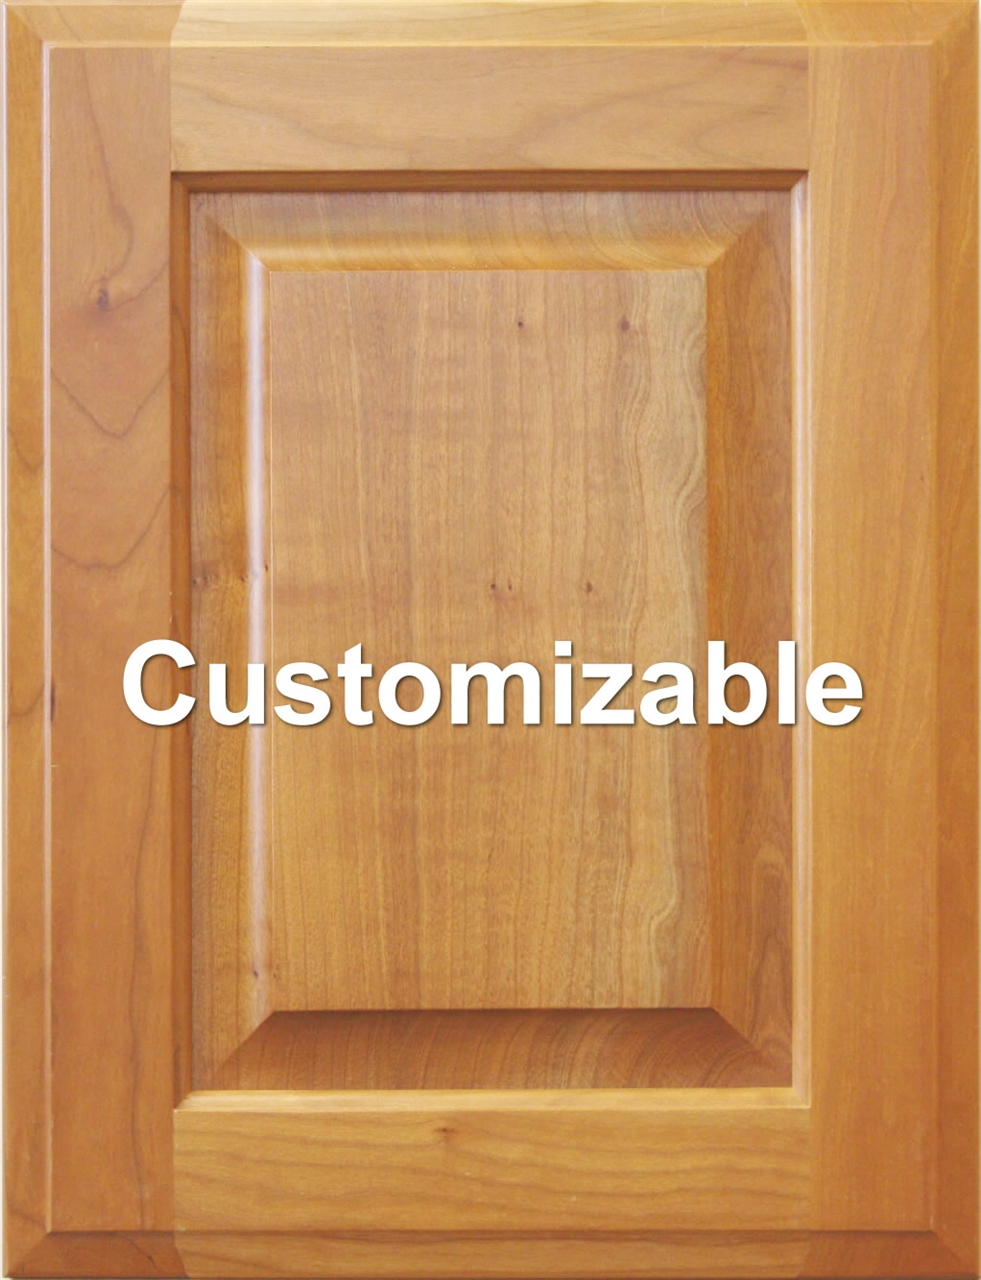 raised panel cabinet doors Custom Raised Panel CabiDoor raised panel cabinet doors